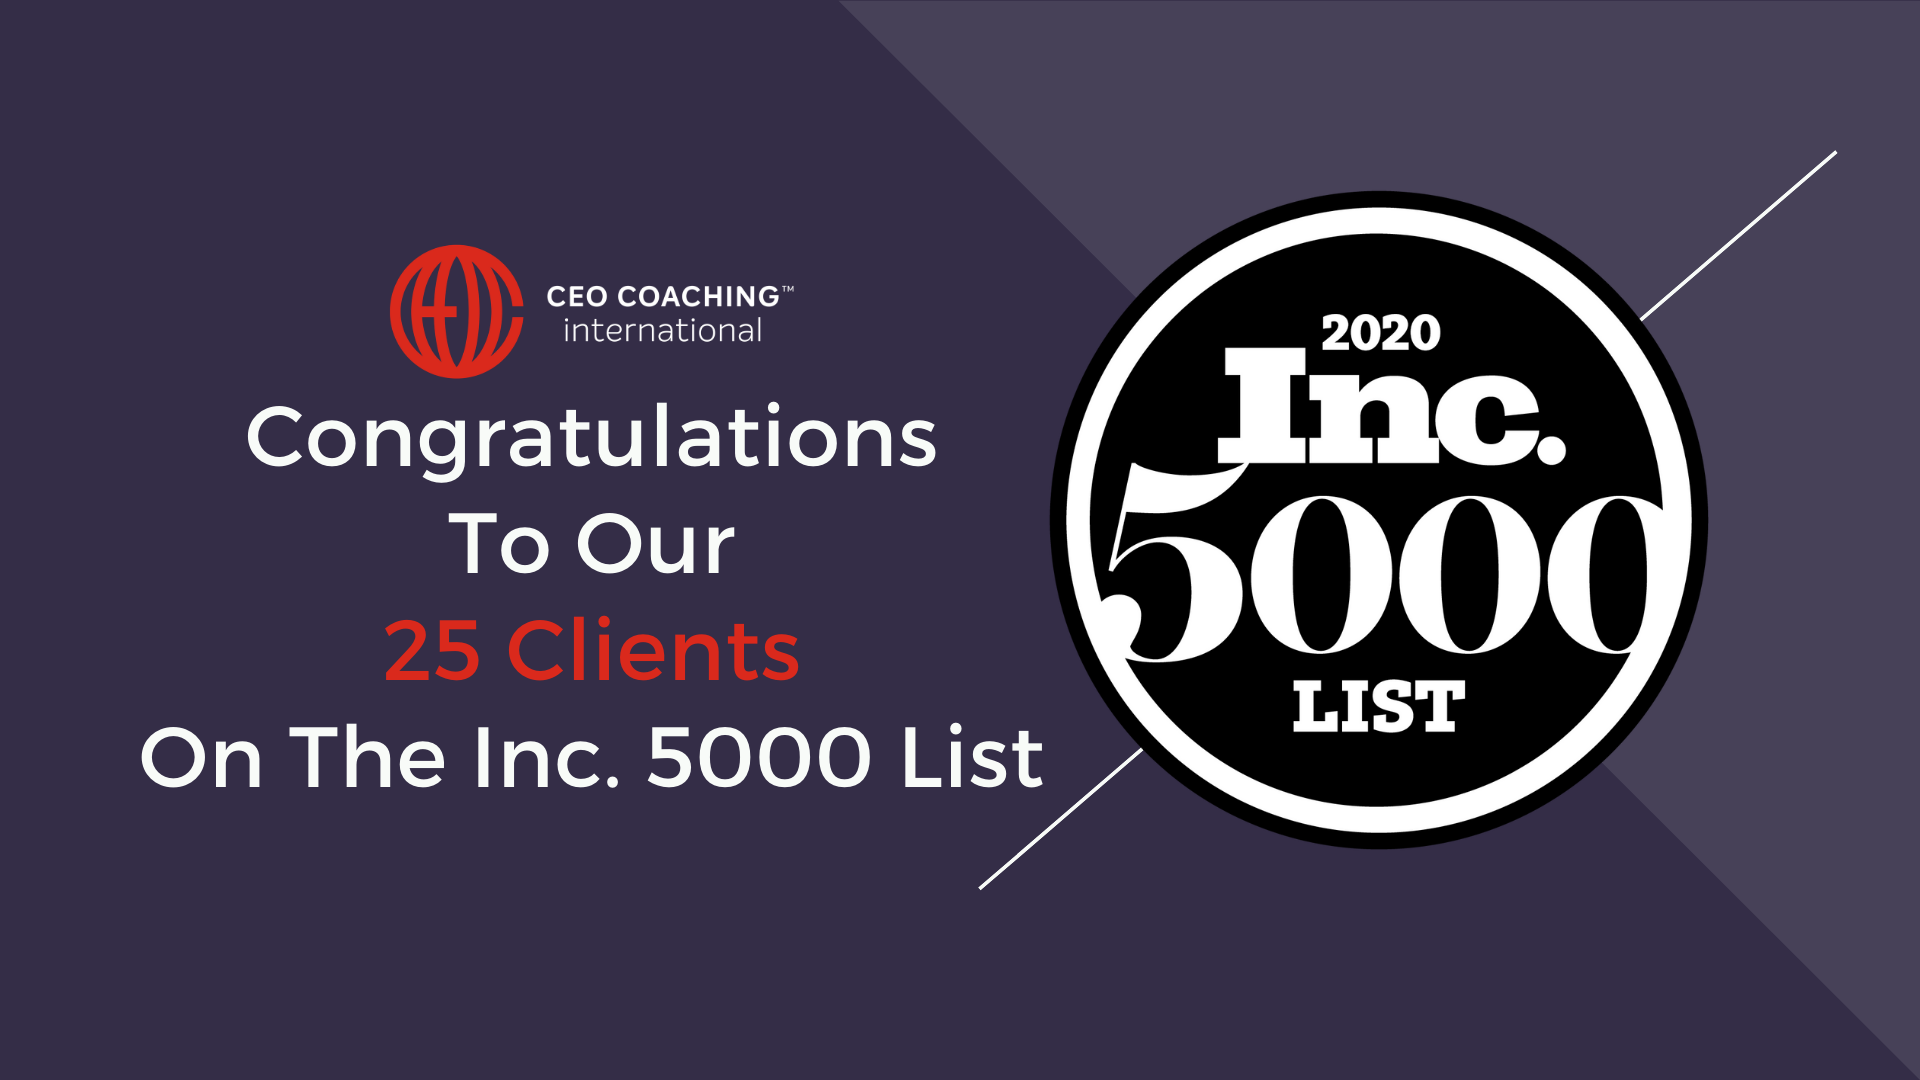 Congrats to the 25 clients on the Inc. 500/5000